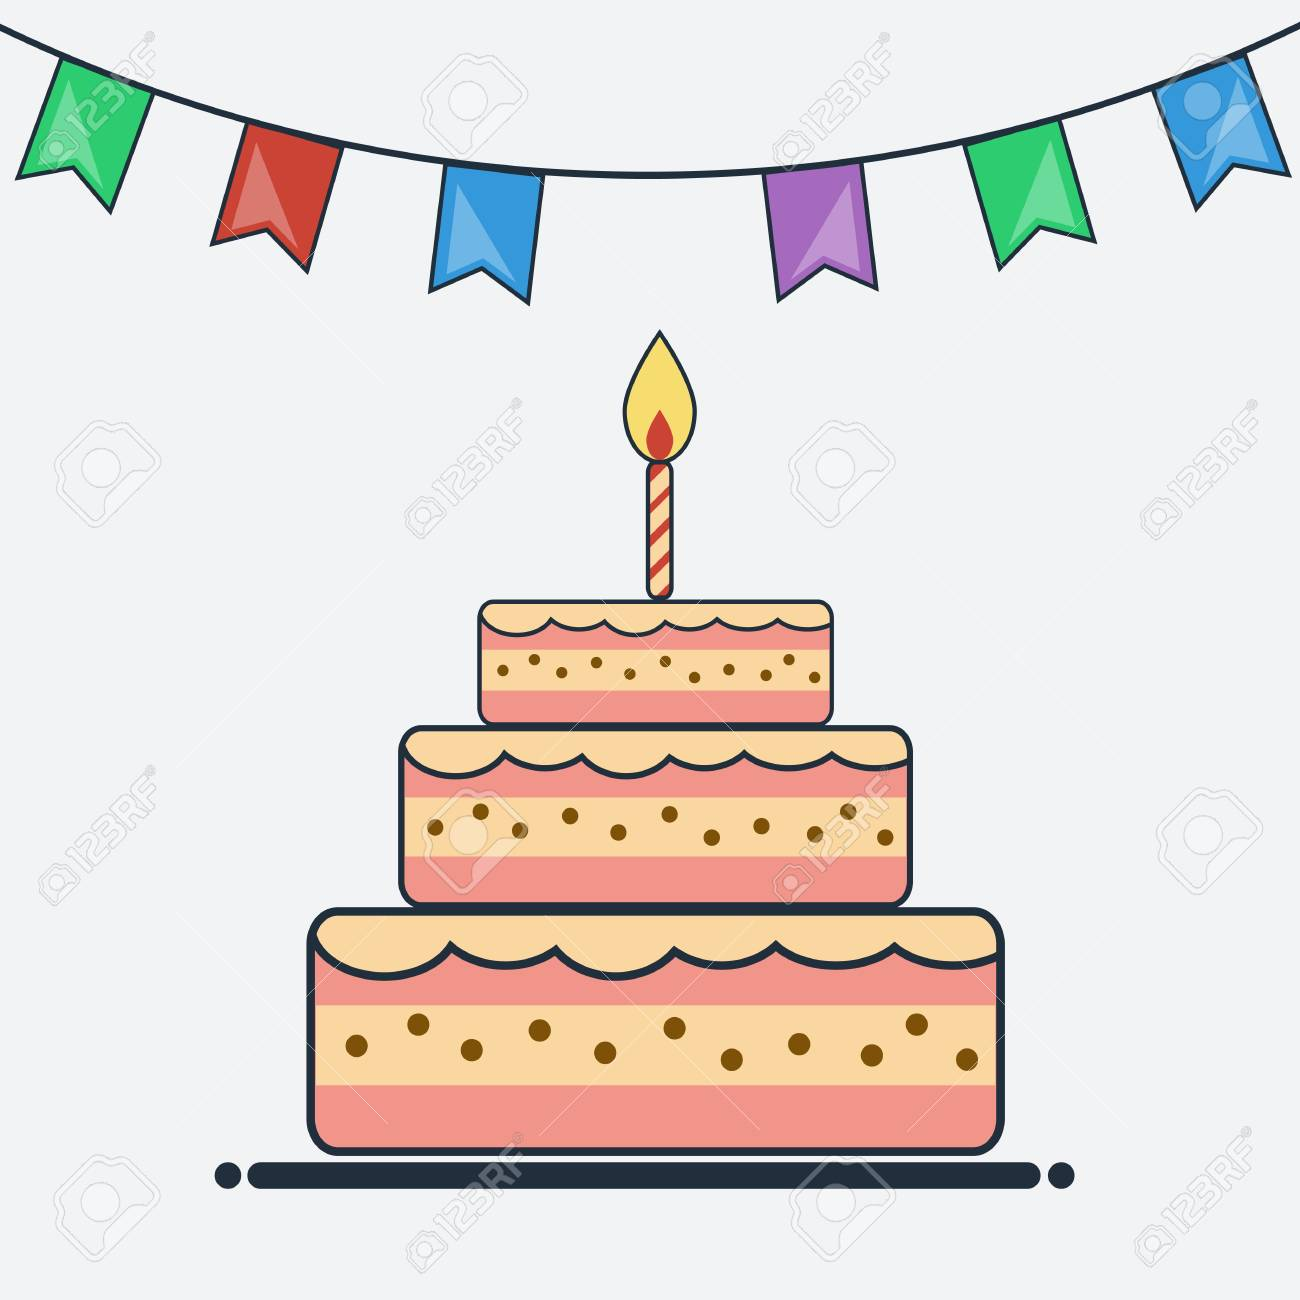 birthday cake and bunting flags flat design. cake icon. creative